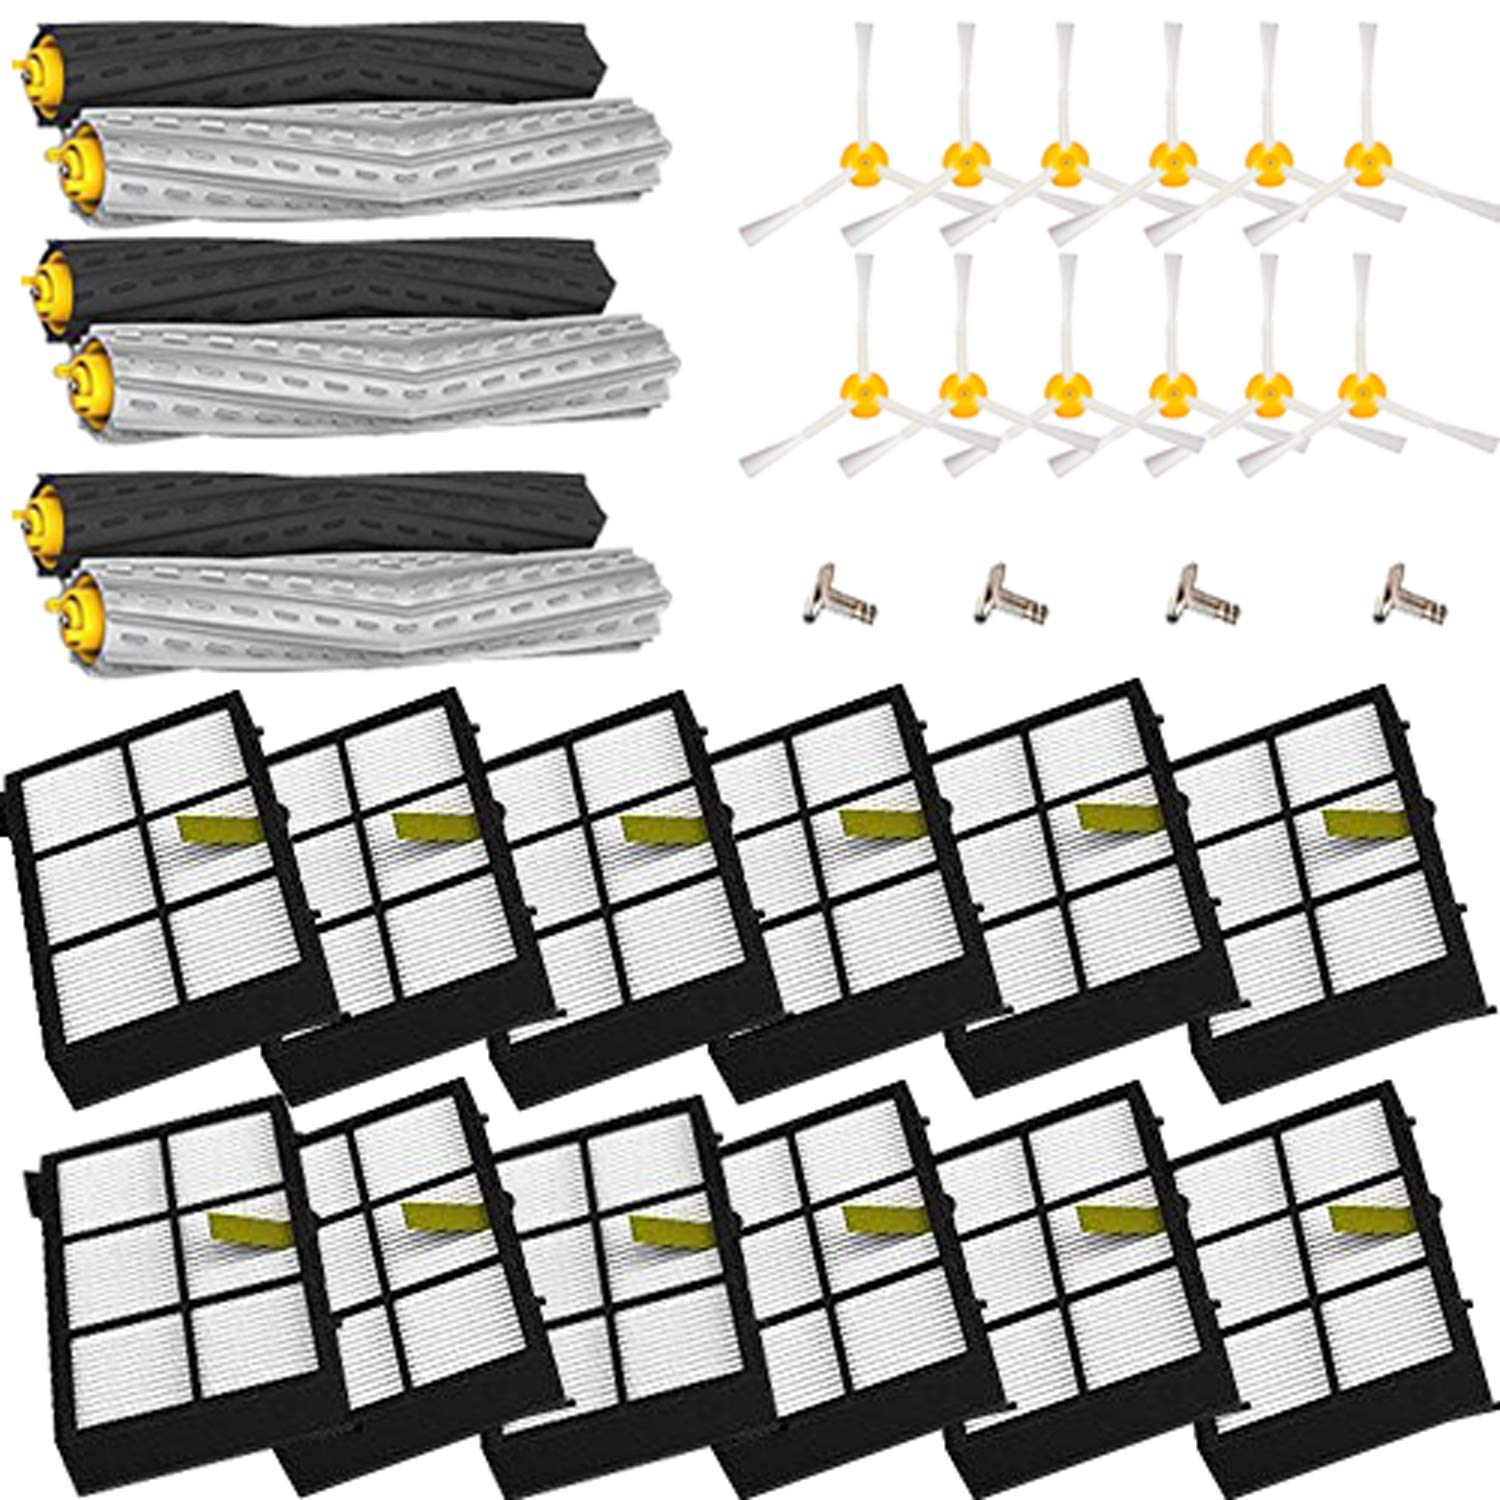 Amyehouse Tangle-Free Debris Extractor Set and Filter 3 Arm Brush for iRobot Roomba 800 900 Series 805 860 870 871 880 890 960 980 Vacuum Replacement Parts